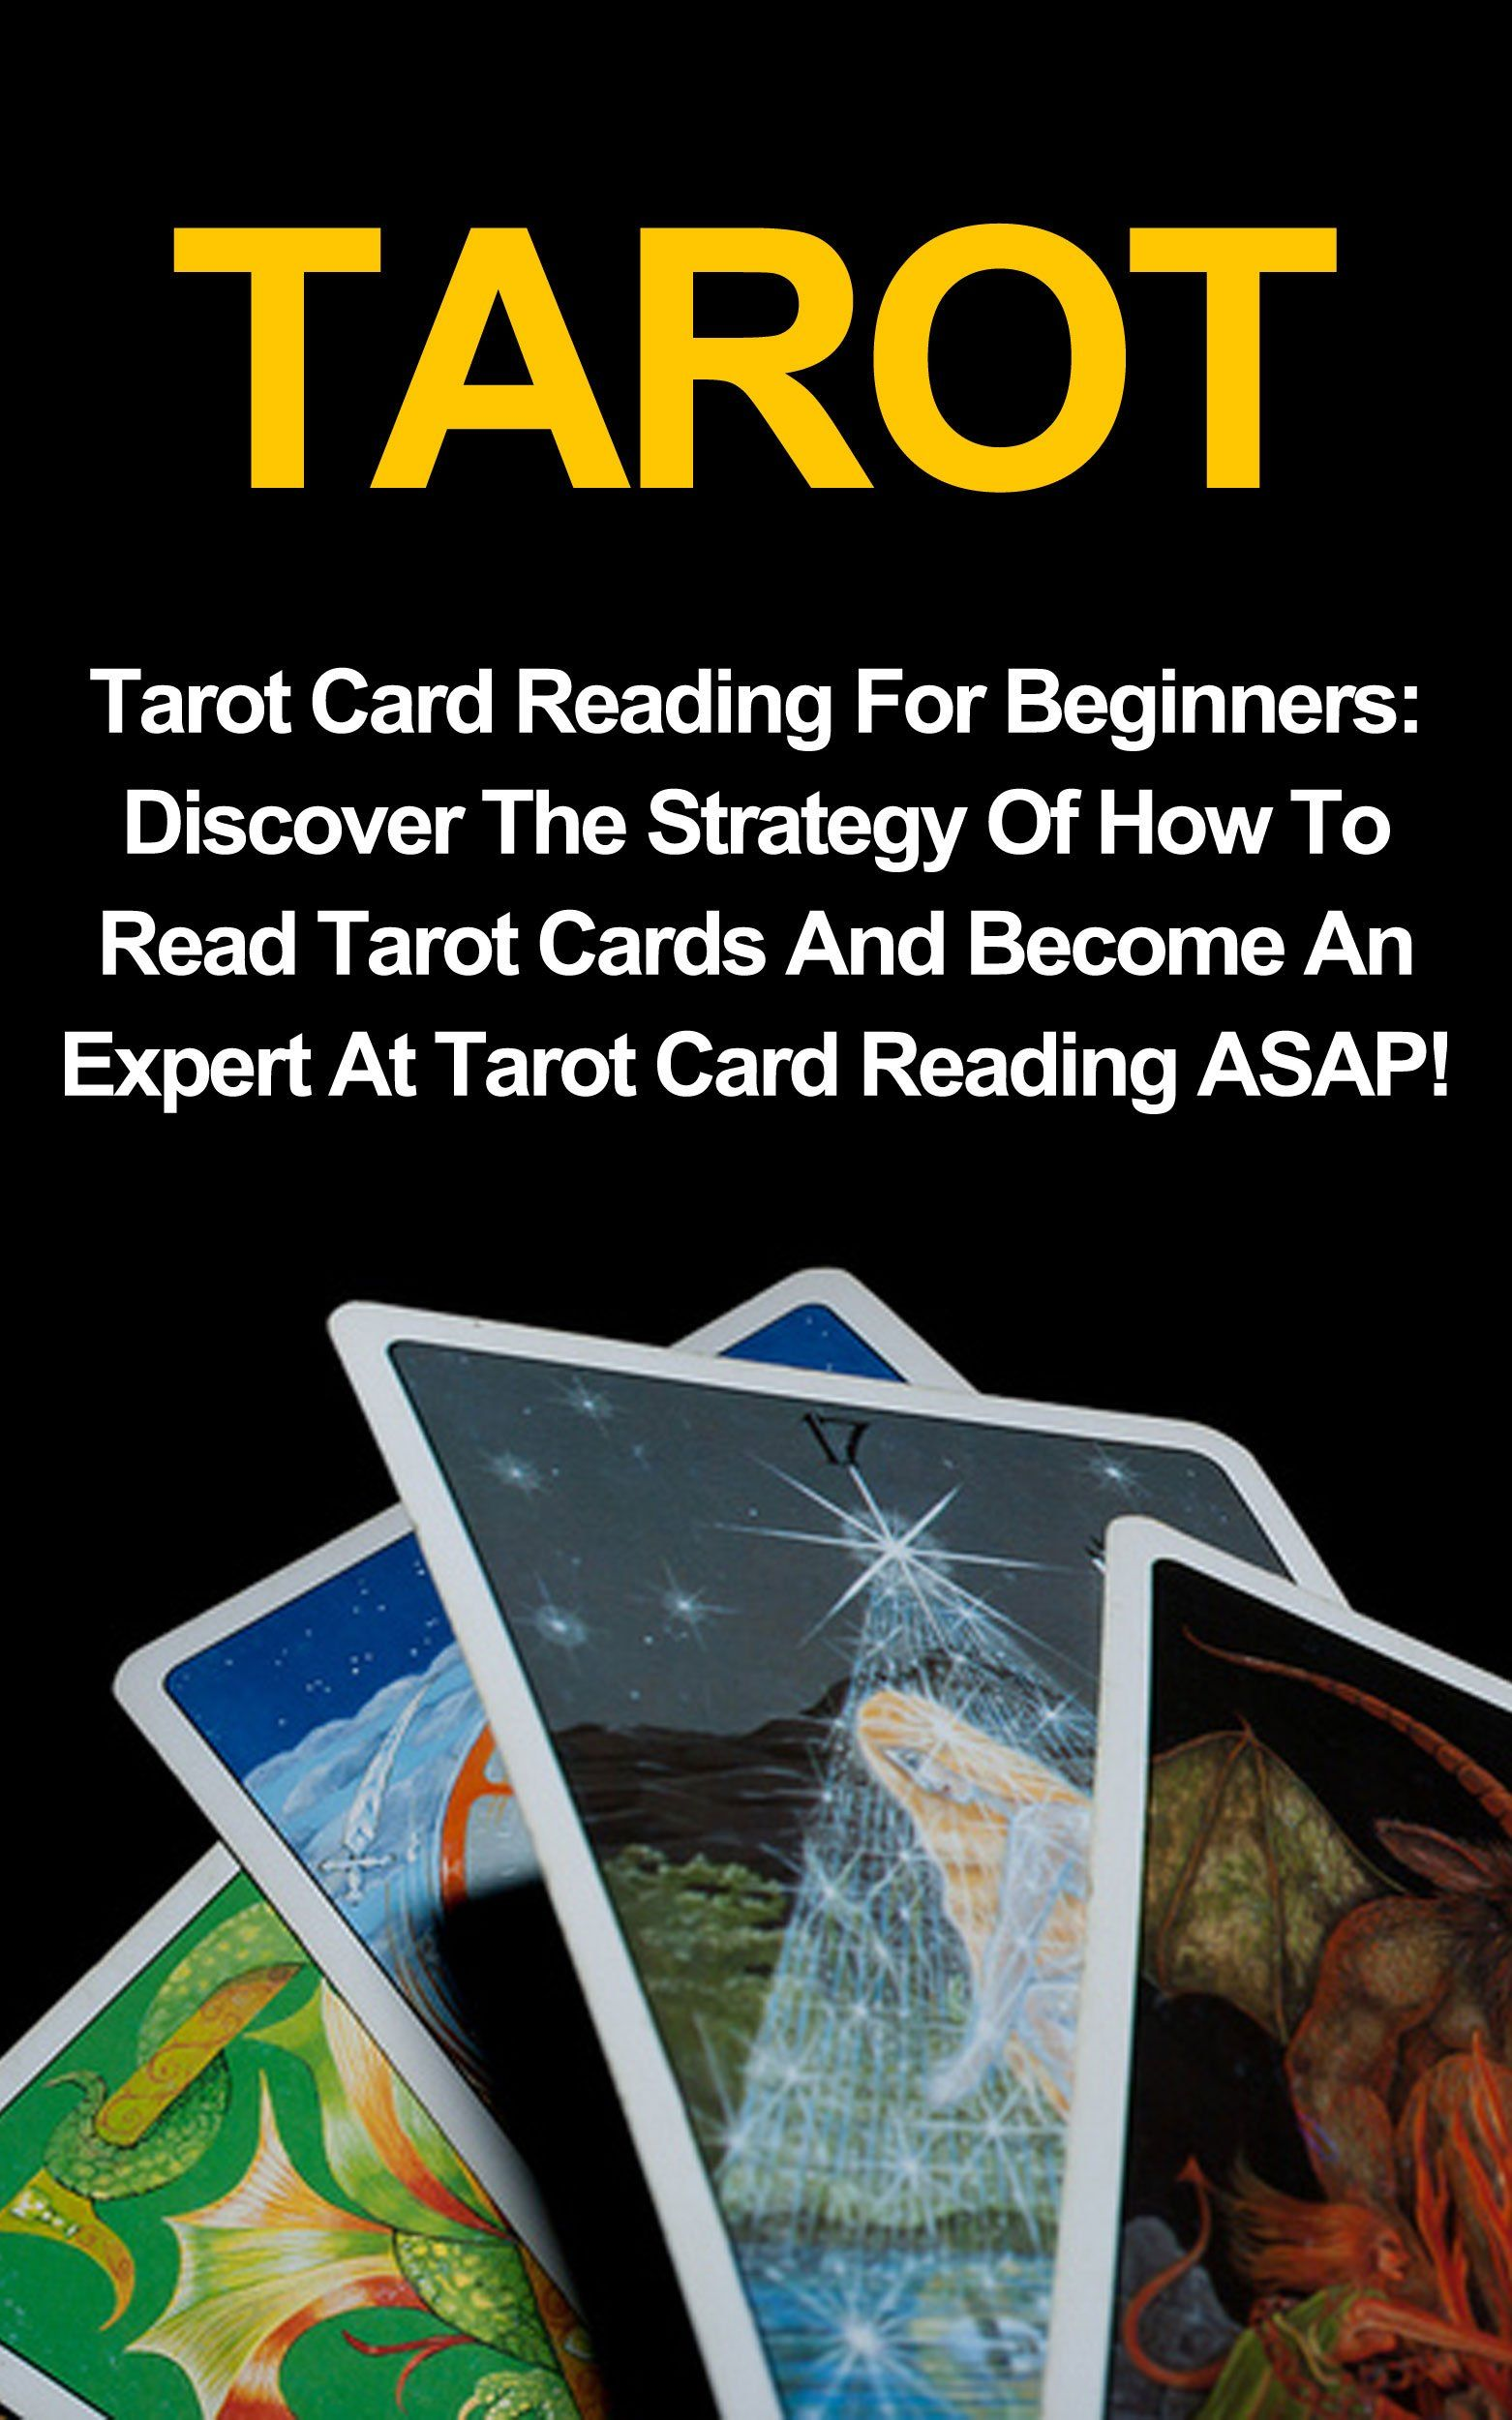 Tarot Cards For Beginners Discover The Strategy Of How To